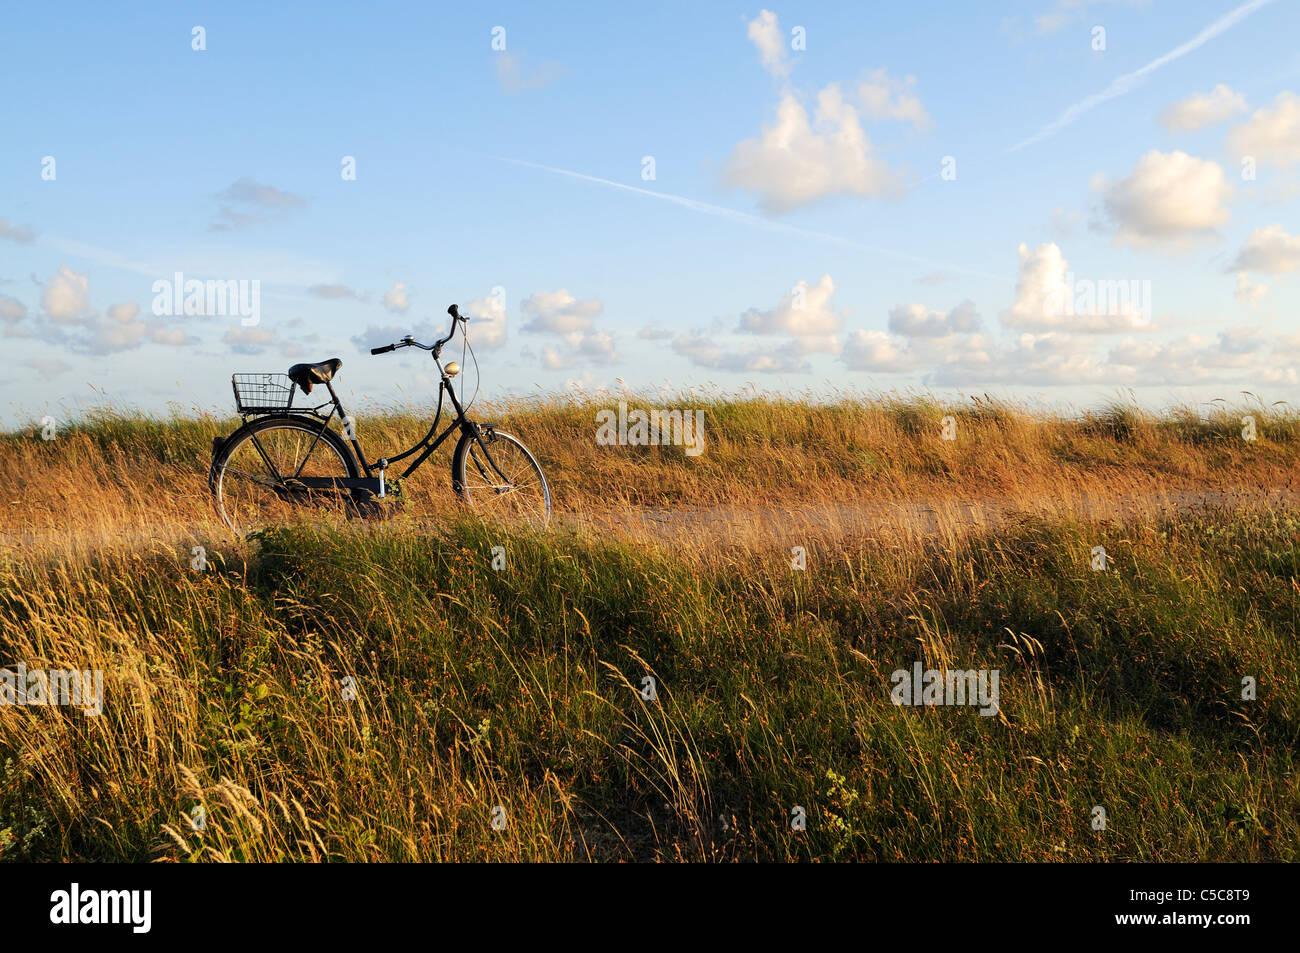 Bicycle on a coastal boardwalk against a beautiful blue sky,  North Sea Islands of Germany, Wangerooge. Stock Photo